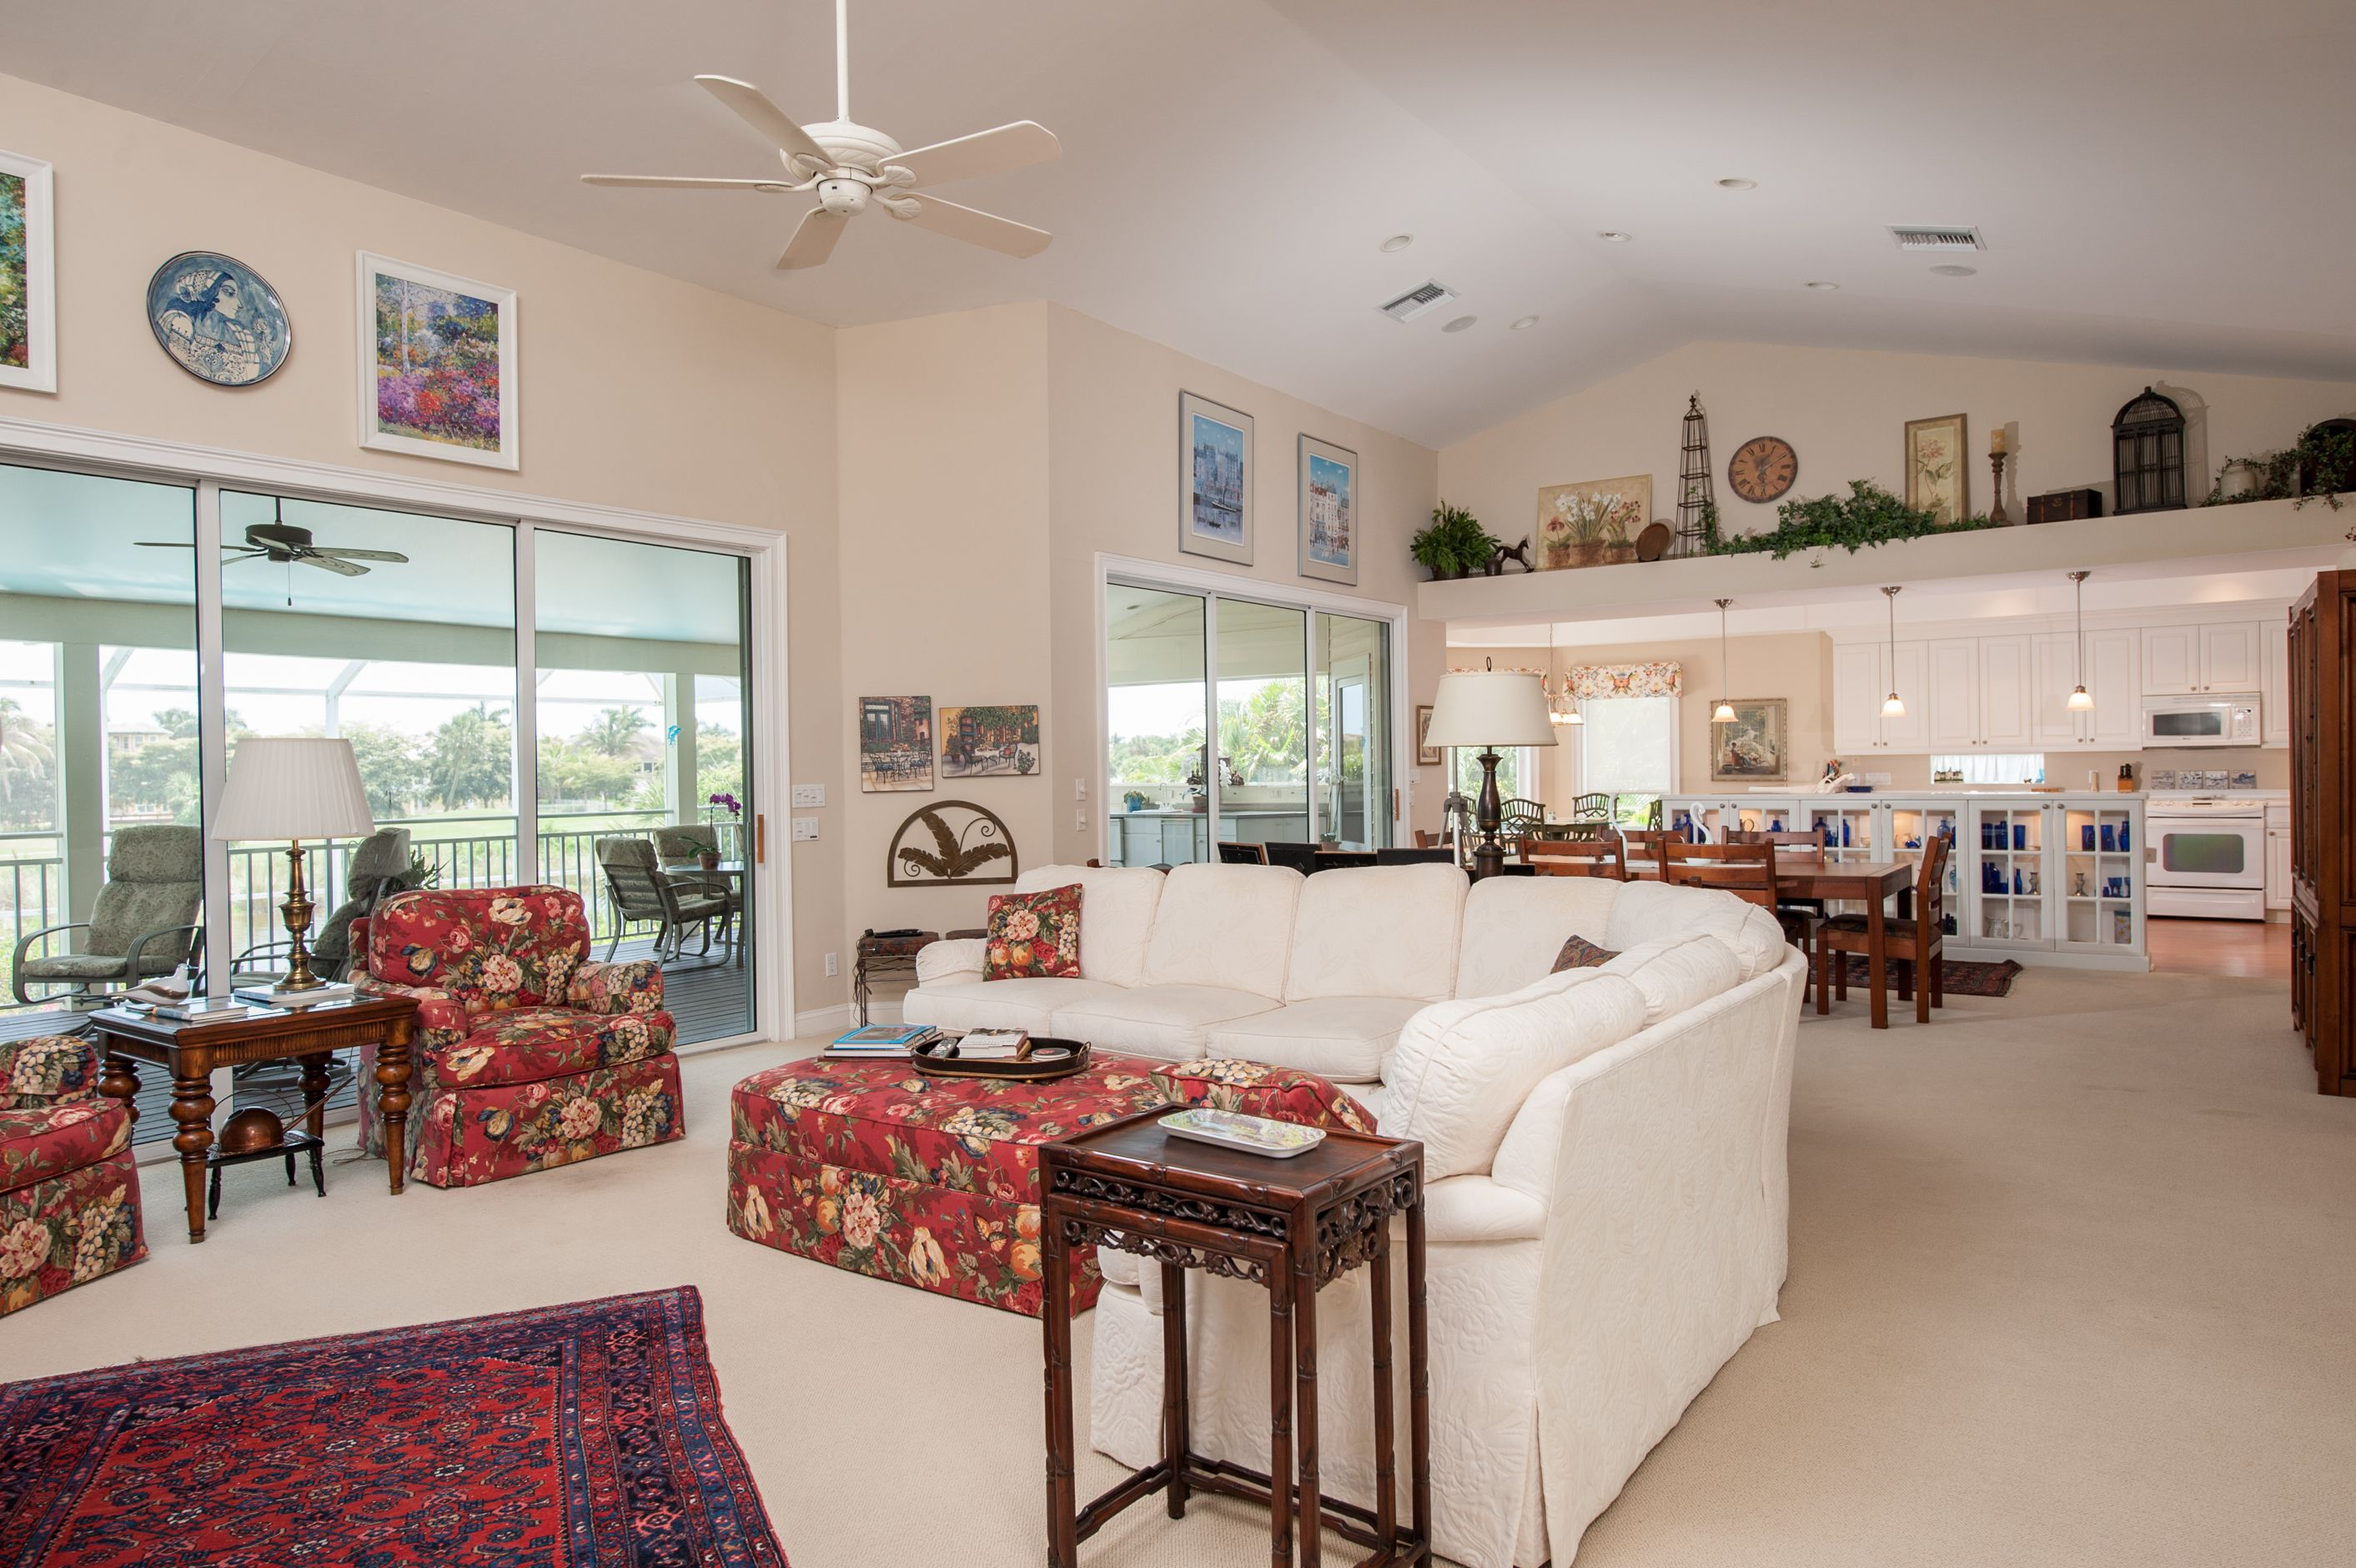 The Great Room Boasts Soaring Vaulted Ceilings With Display Ledges Stunning Library Den Boasts A Wall Of B Ledge Decor Above Kitchen Cabinets Decor Ideas Home Living room vaulted ceiling ledge